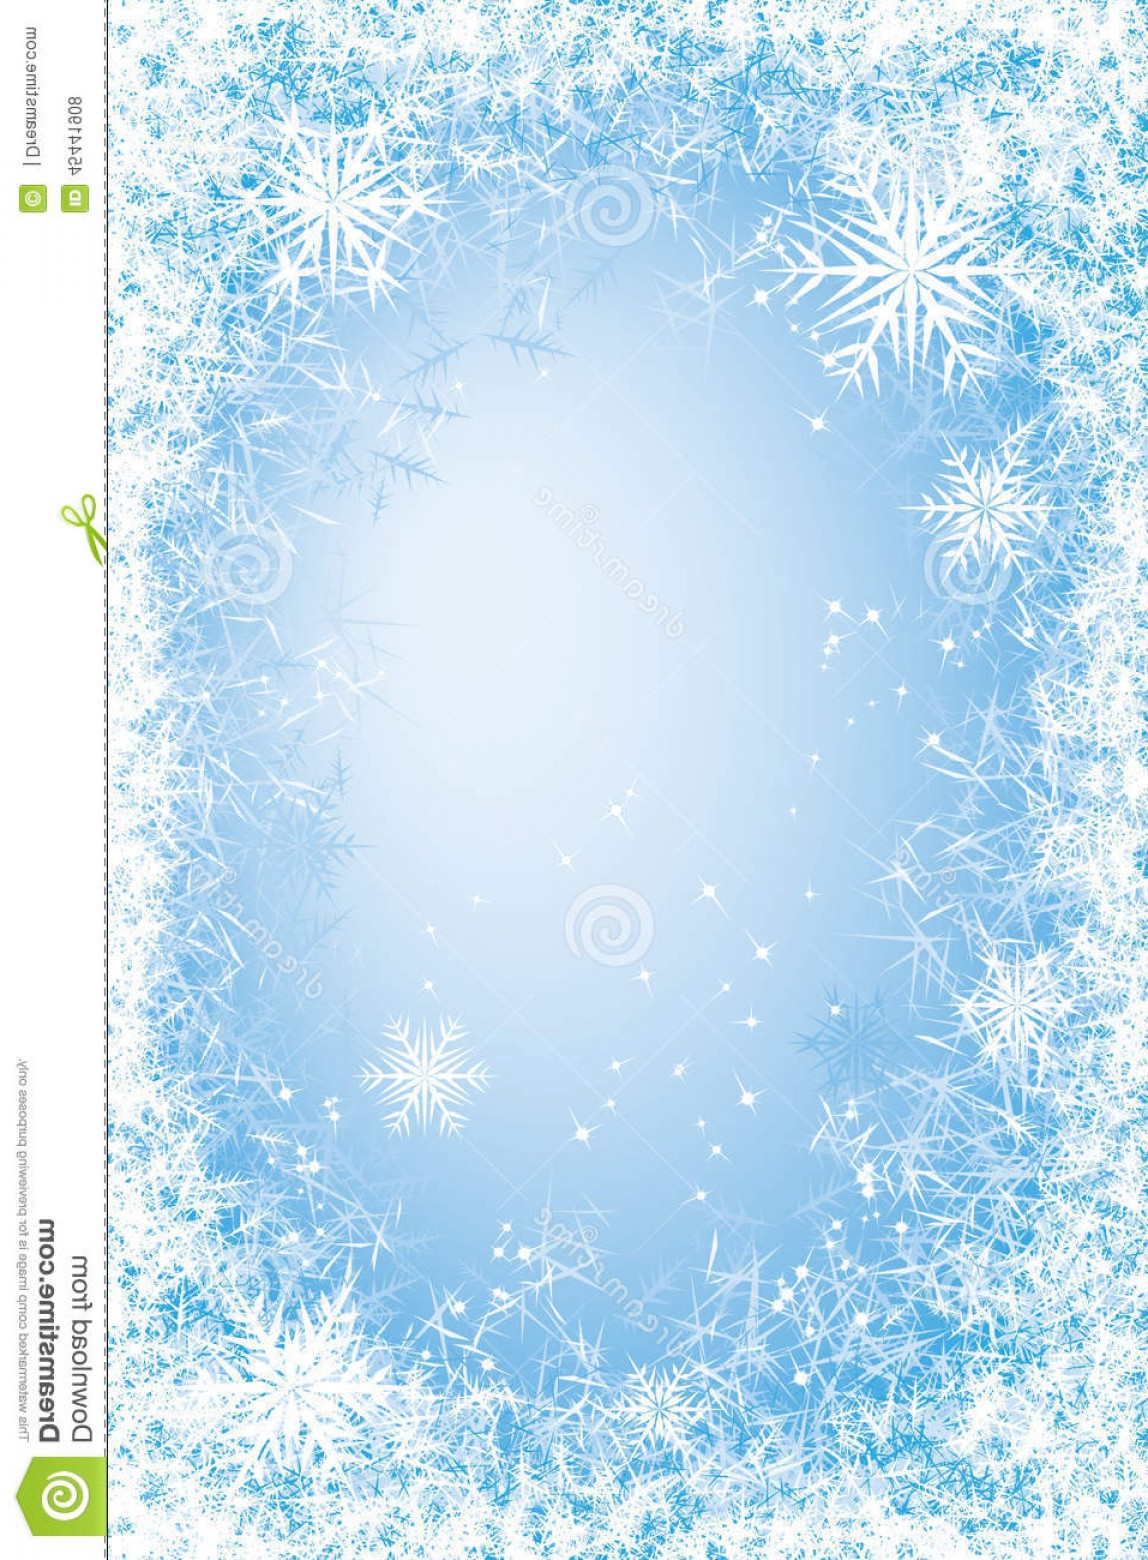 Frost Border Vector: Stock Illustration Frost Frame Light Blue Frosted Window Eps Cmyk Global Color Organized Layers Gradients Used Image